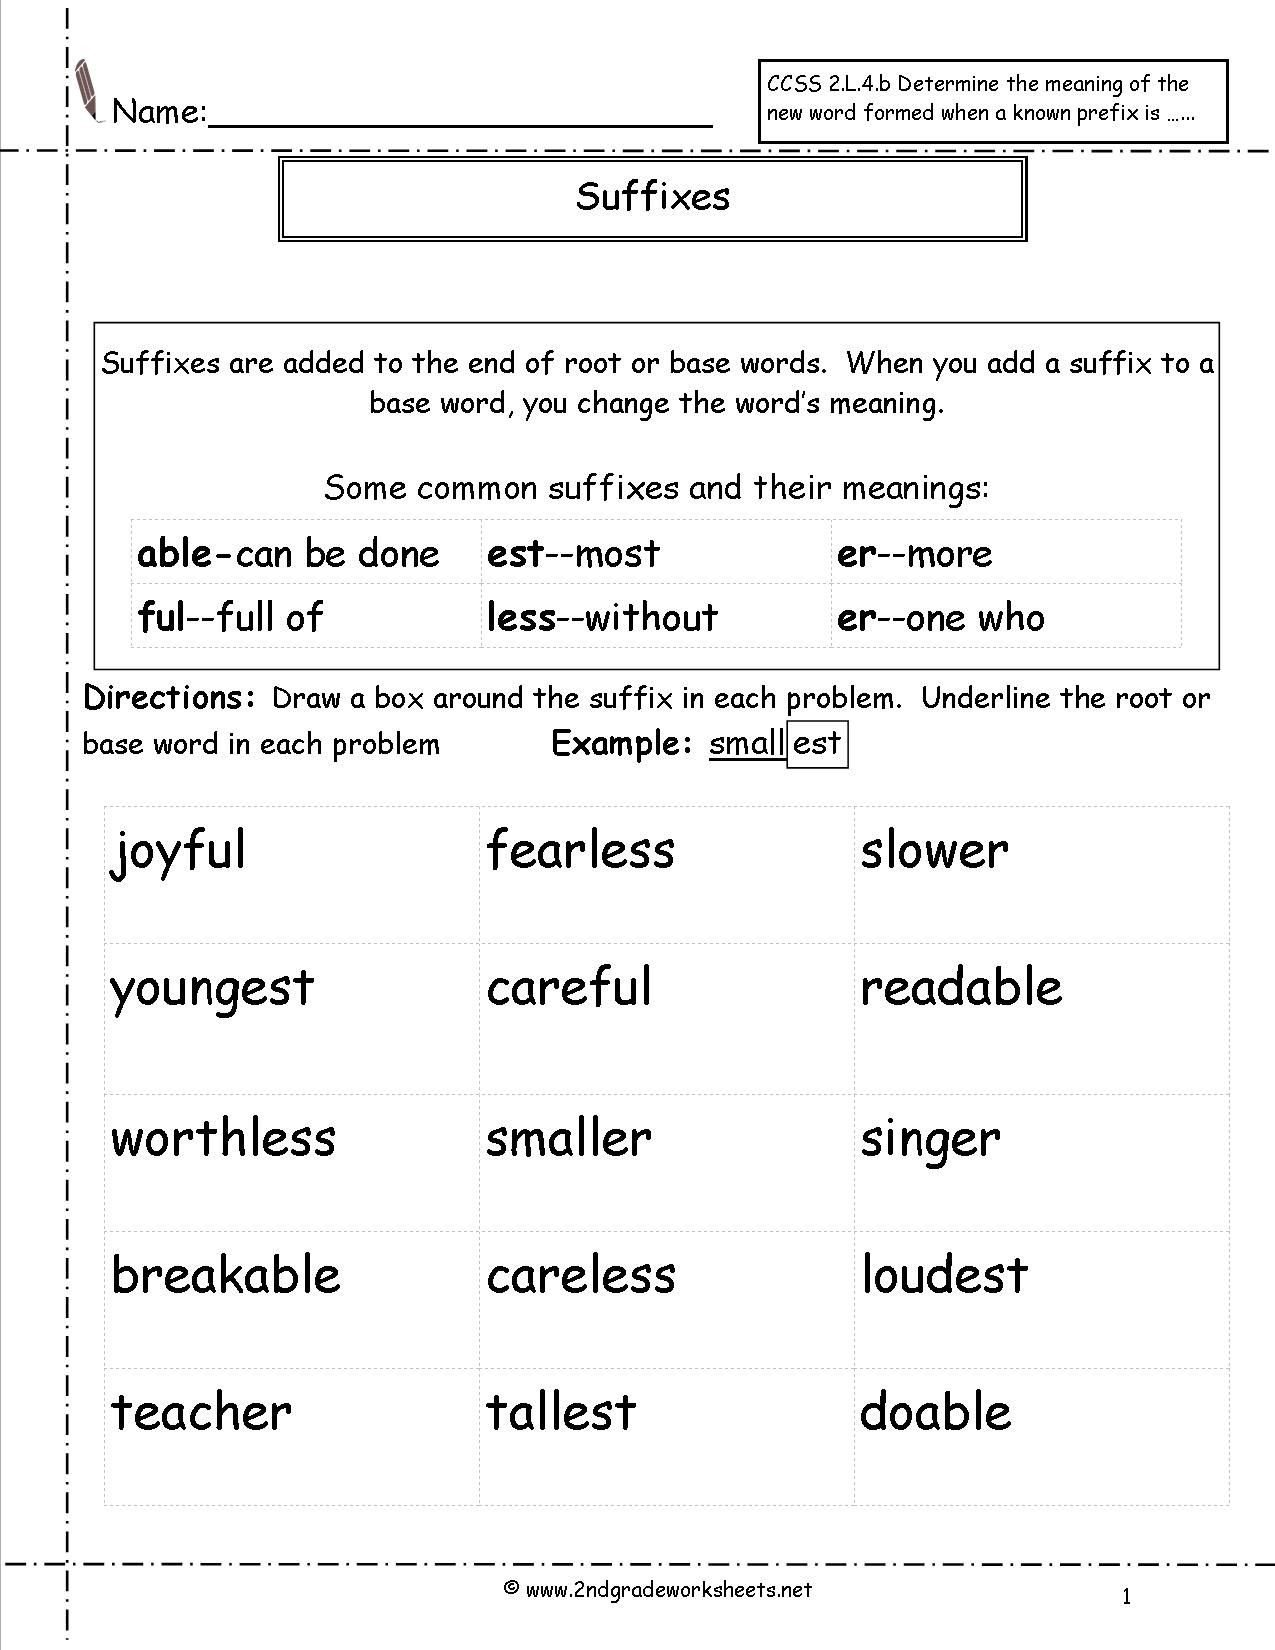 Suffix Worksheets Middle School 41 Innovative Prefix Worksheets for You